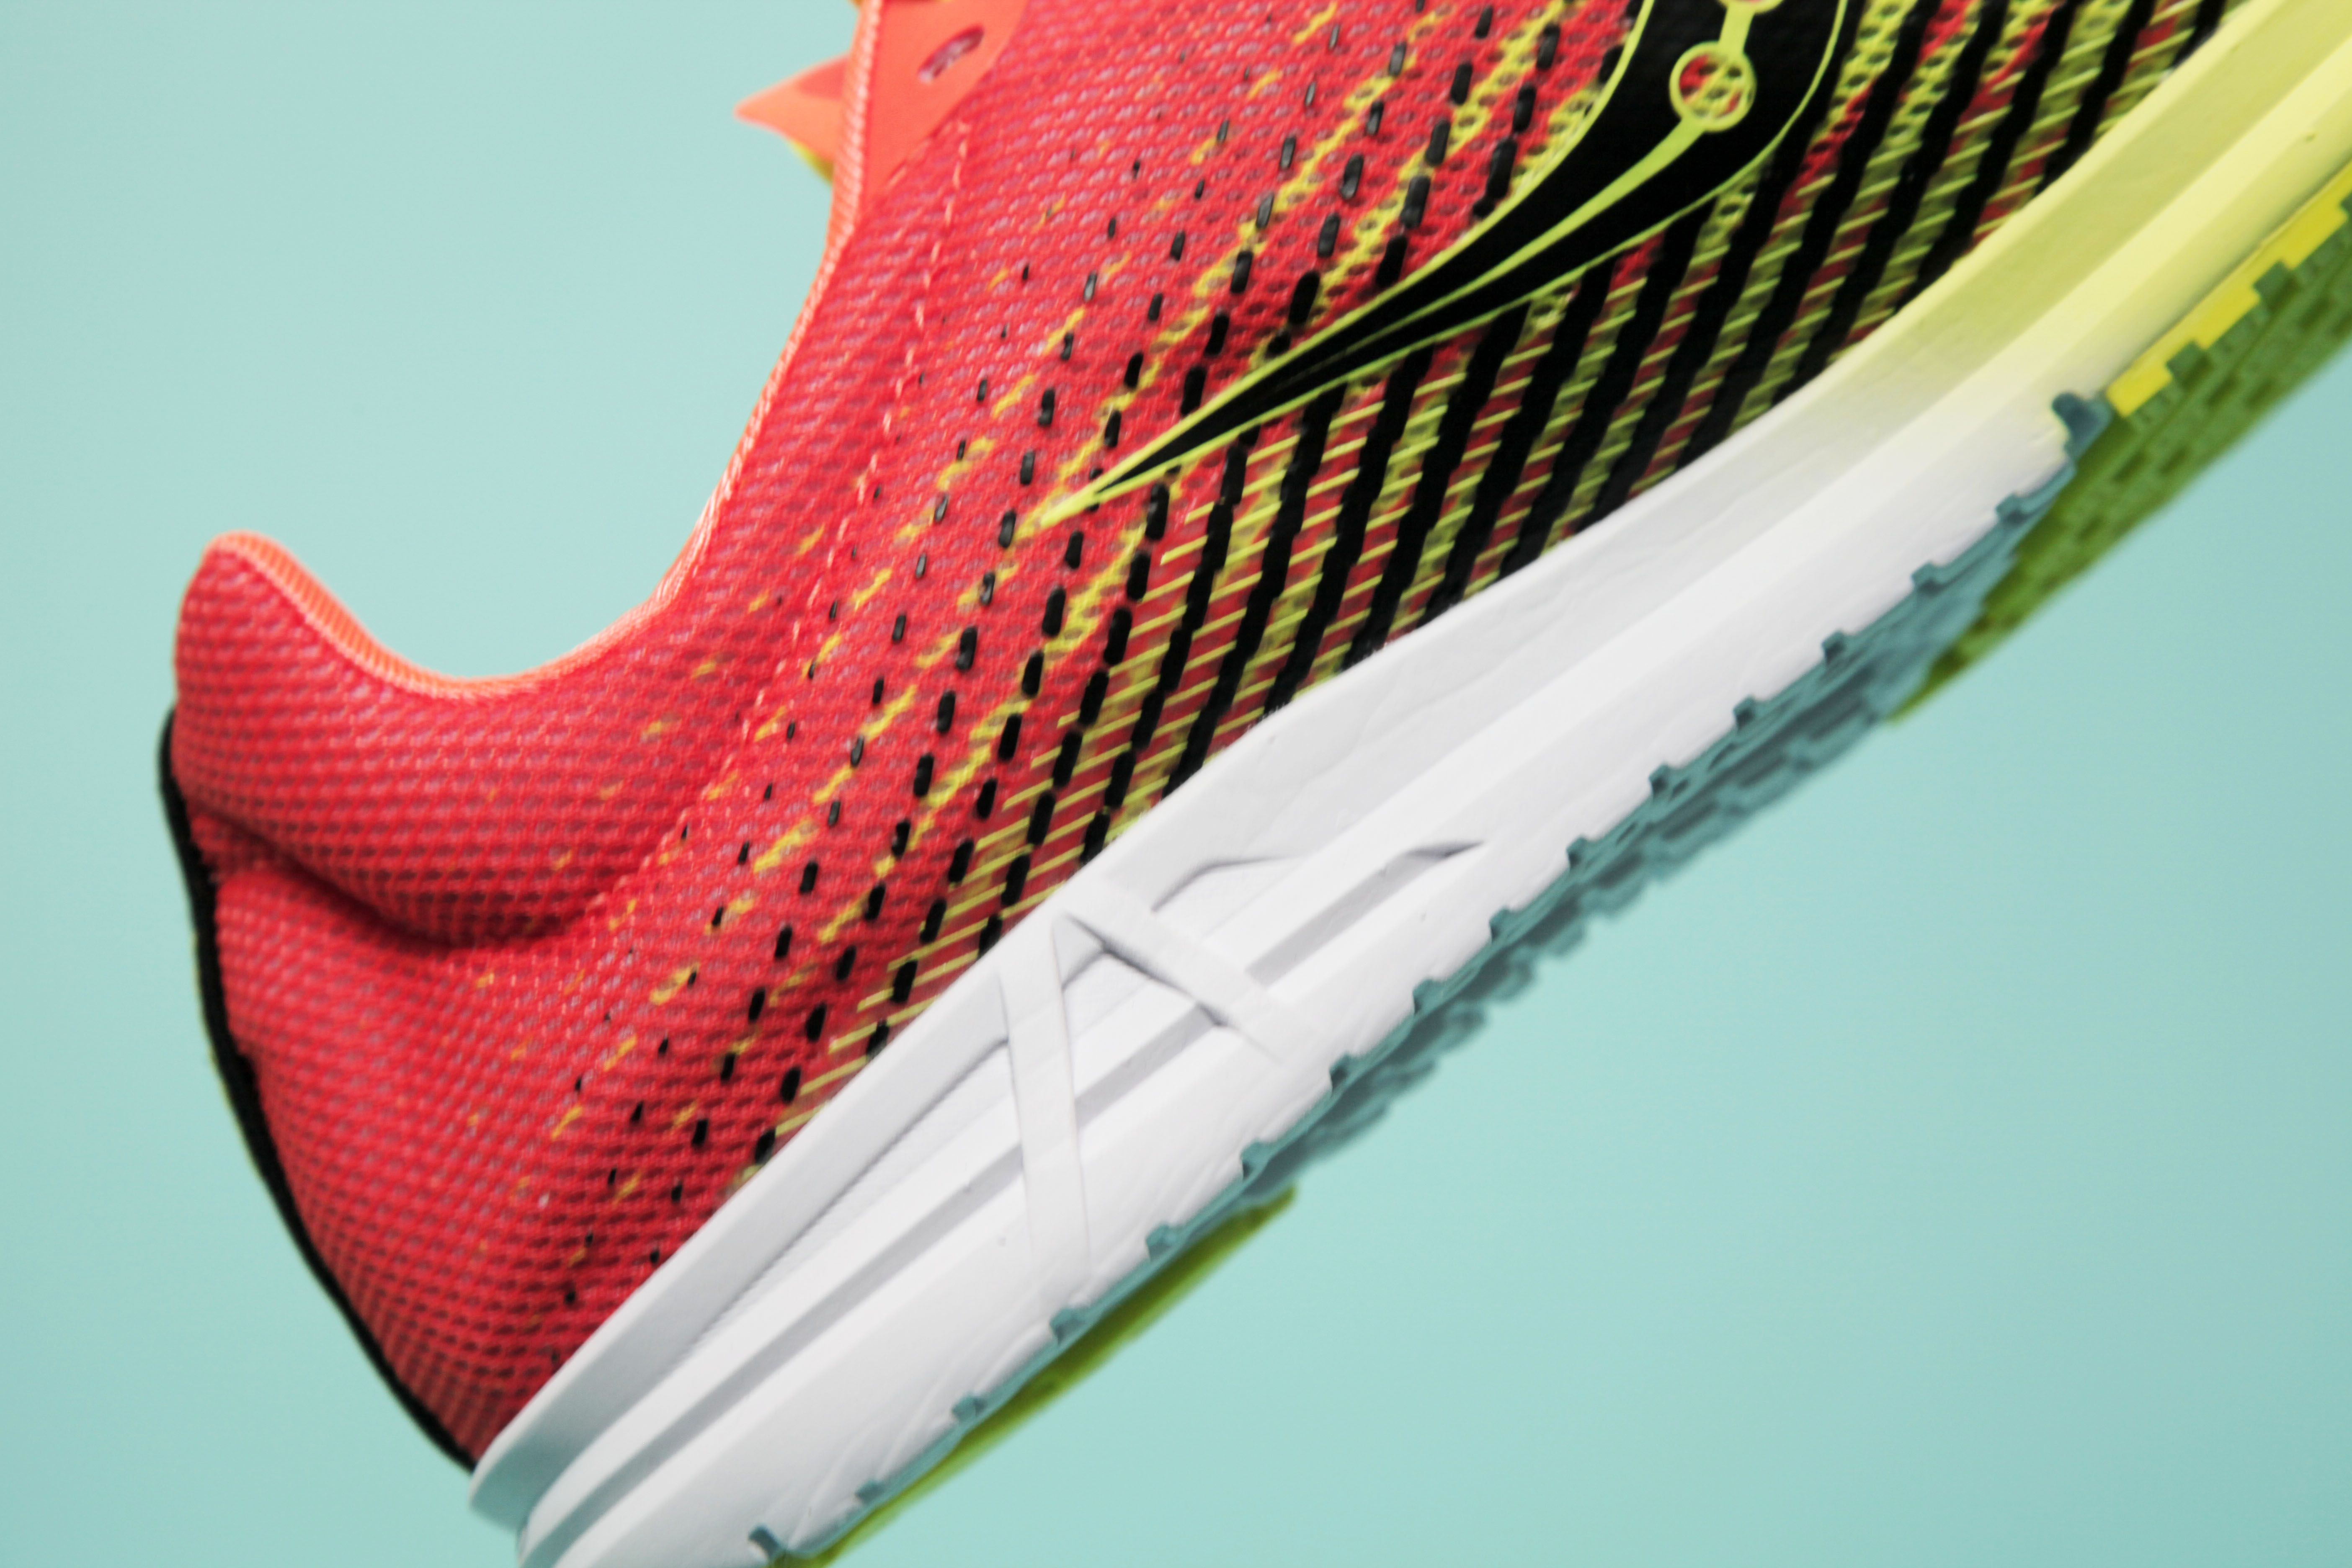 Saucony Type A9 Running Shoe Review: An